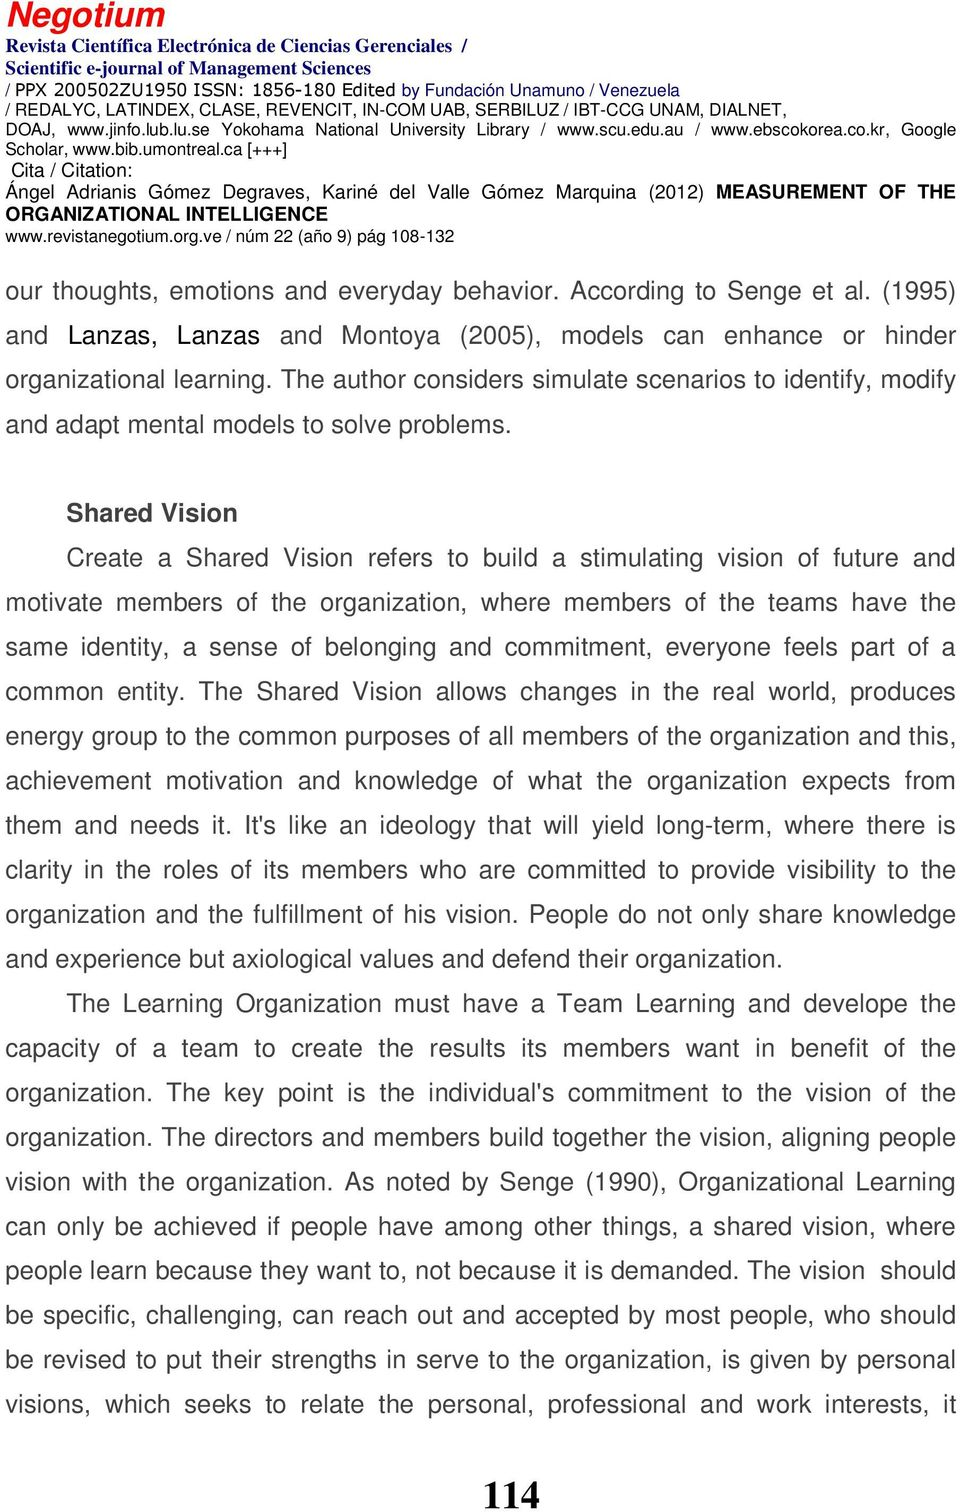 Shared Vision Create a Shared Vision refers to build a stimulating vision of future and motivate members of the organization, where members of the teams have the same identity, a sense of belonging